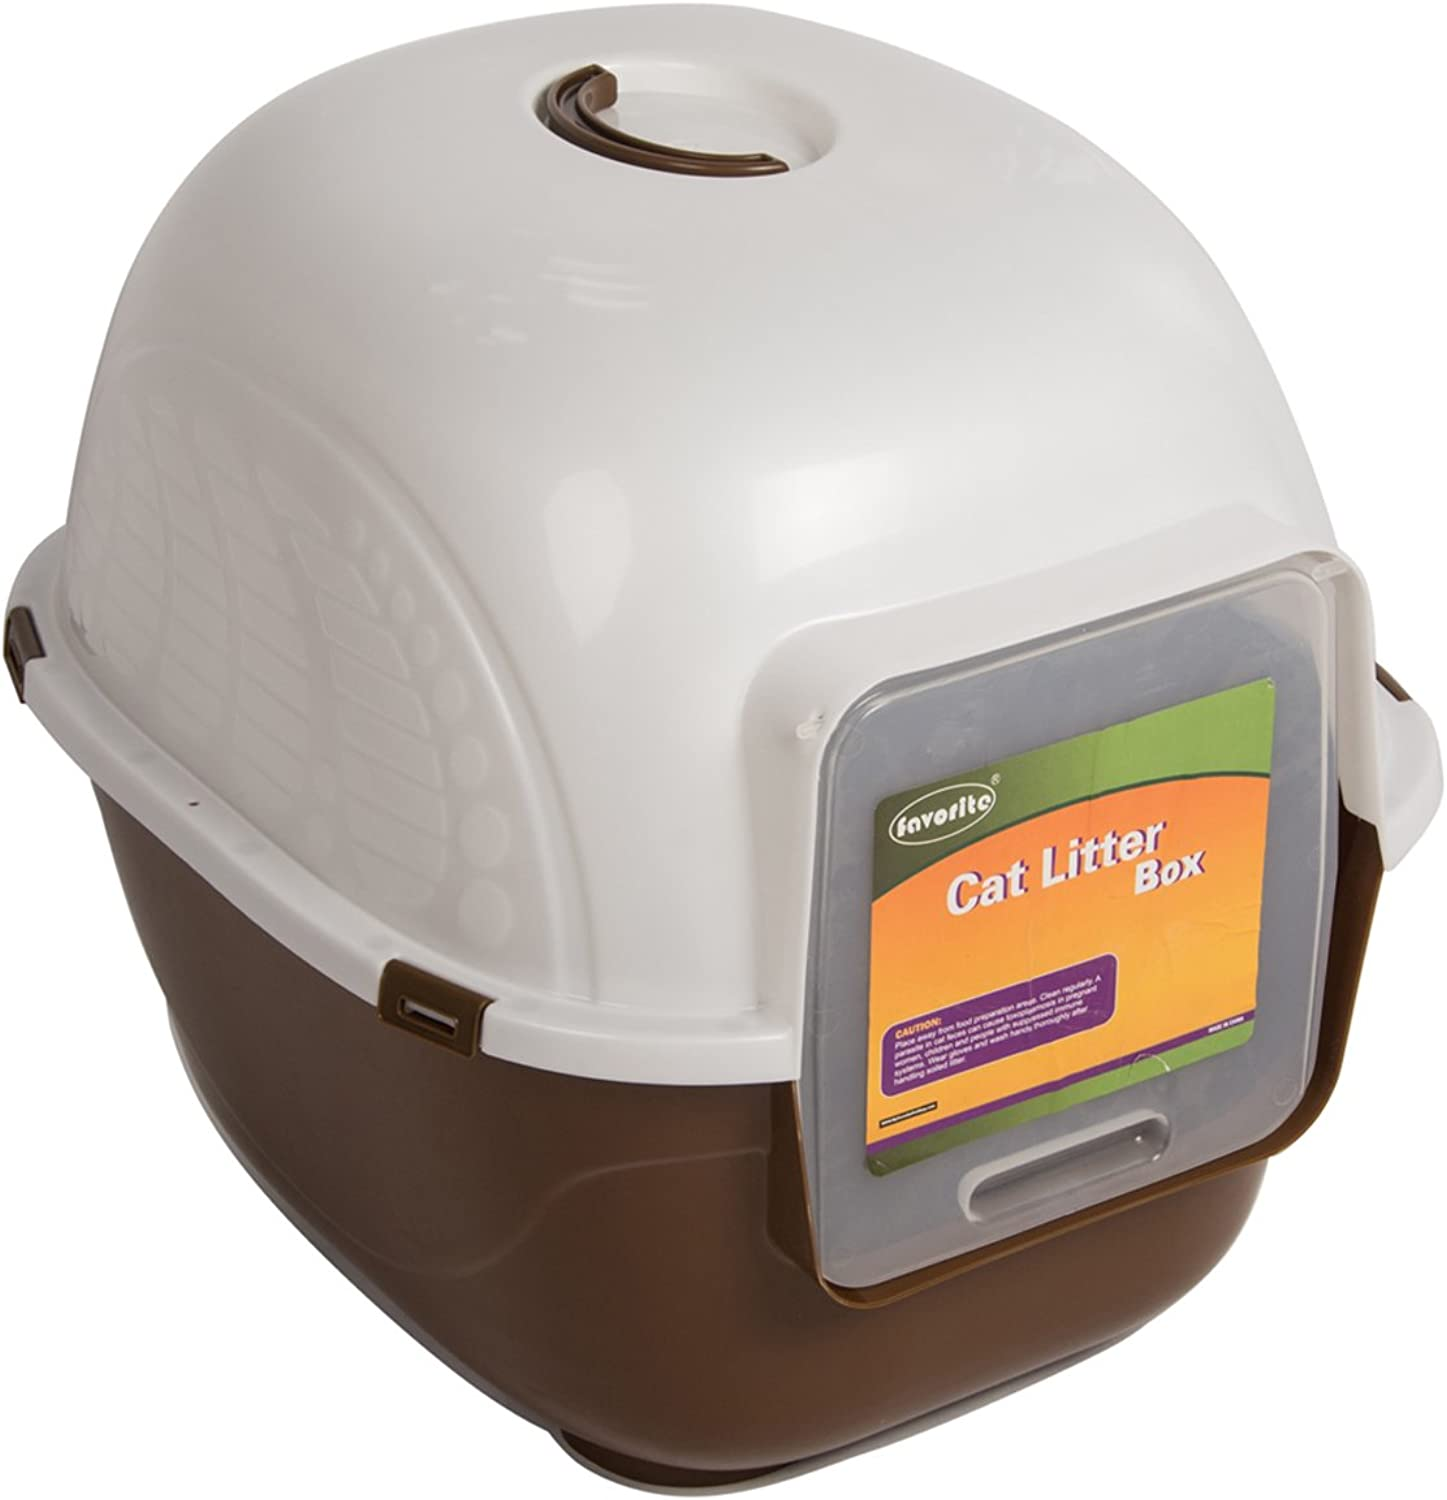 Favorite Portable Side Enter Covered Cat Litter Box, Brown, XL